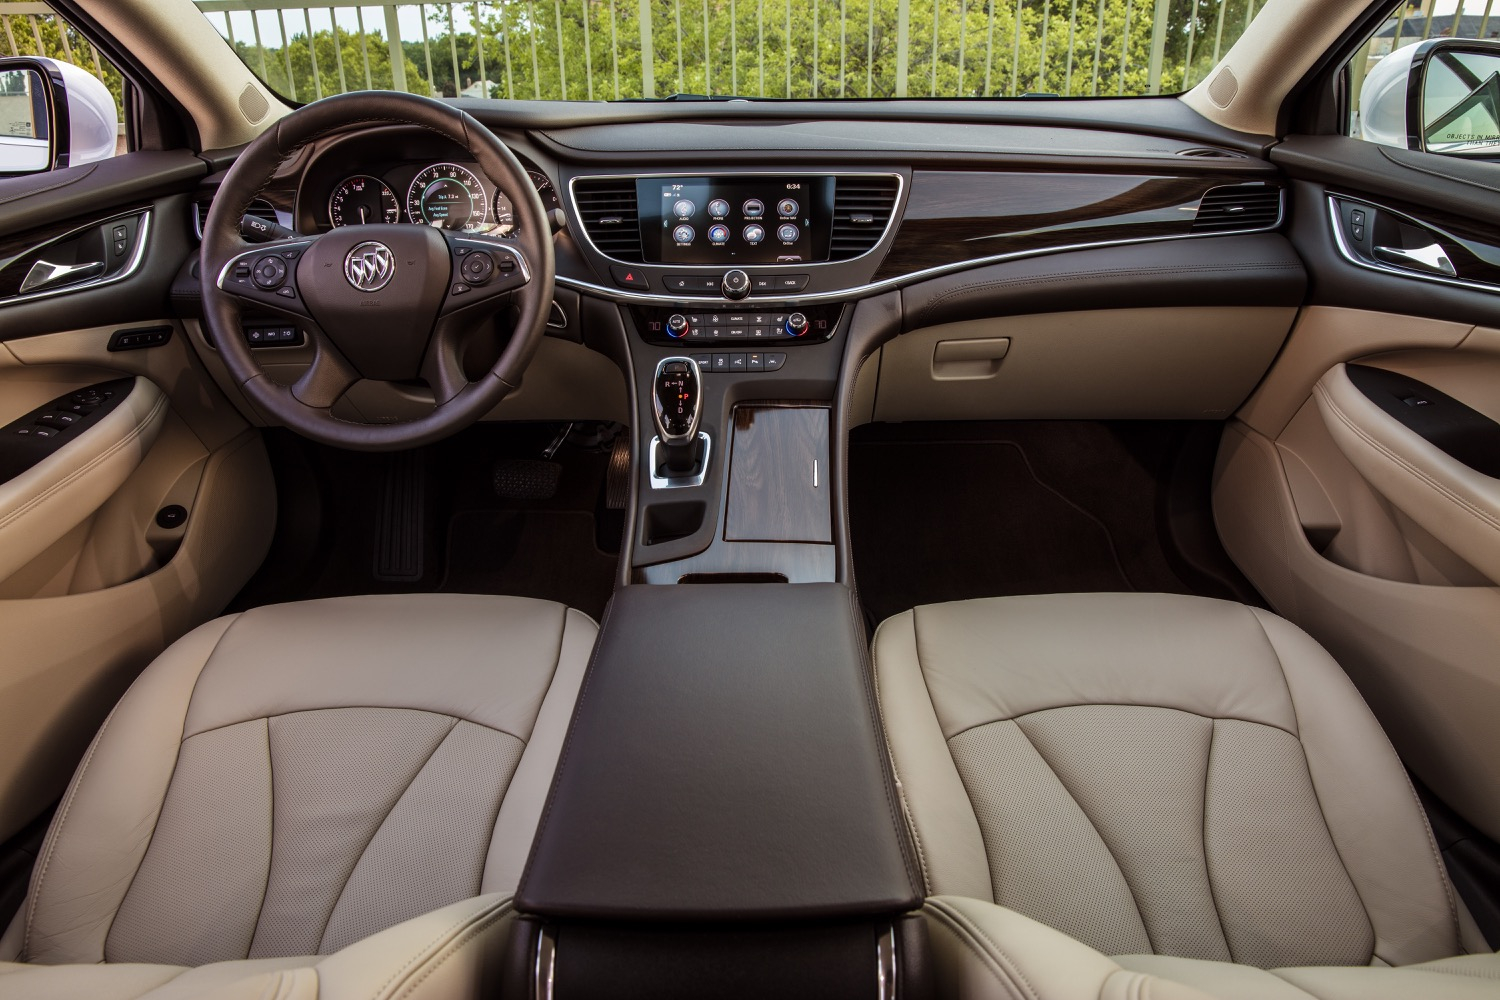 New Pewter Metallic Color For 2019 Buick Lacrosse | Gm Authority New 2022 Buick Regal Tourx Interior, Brochure, Preferred